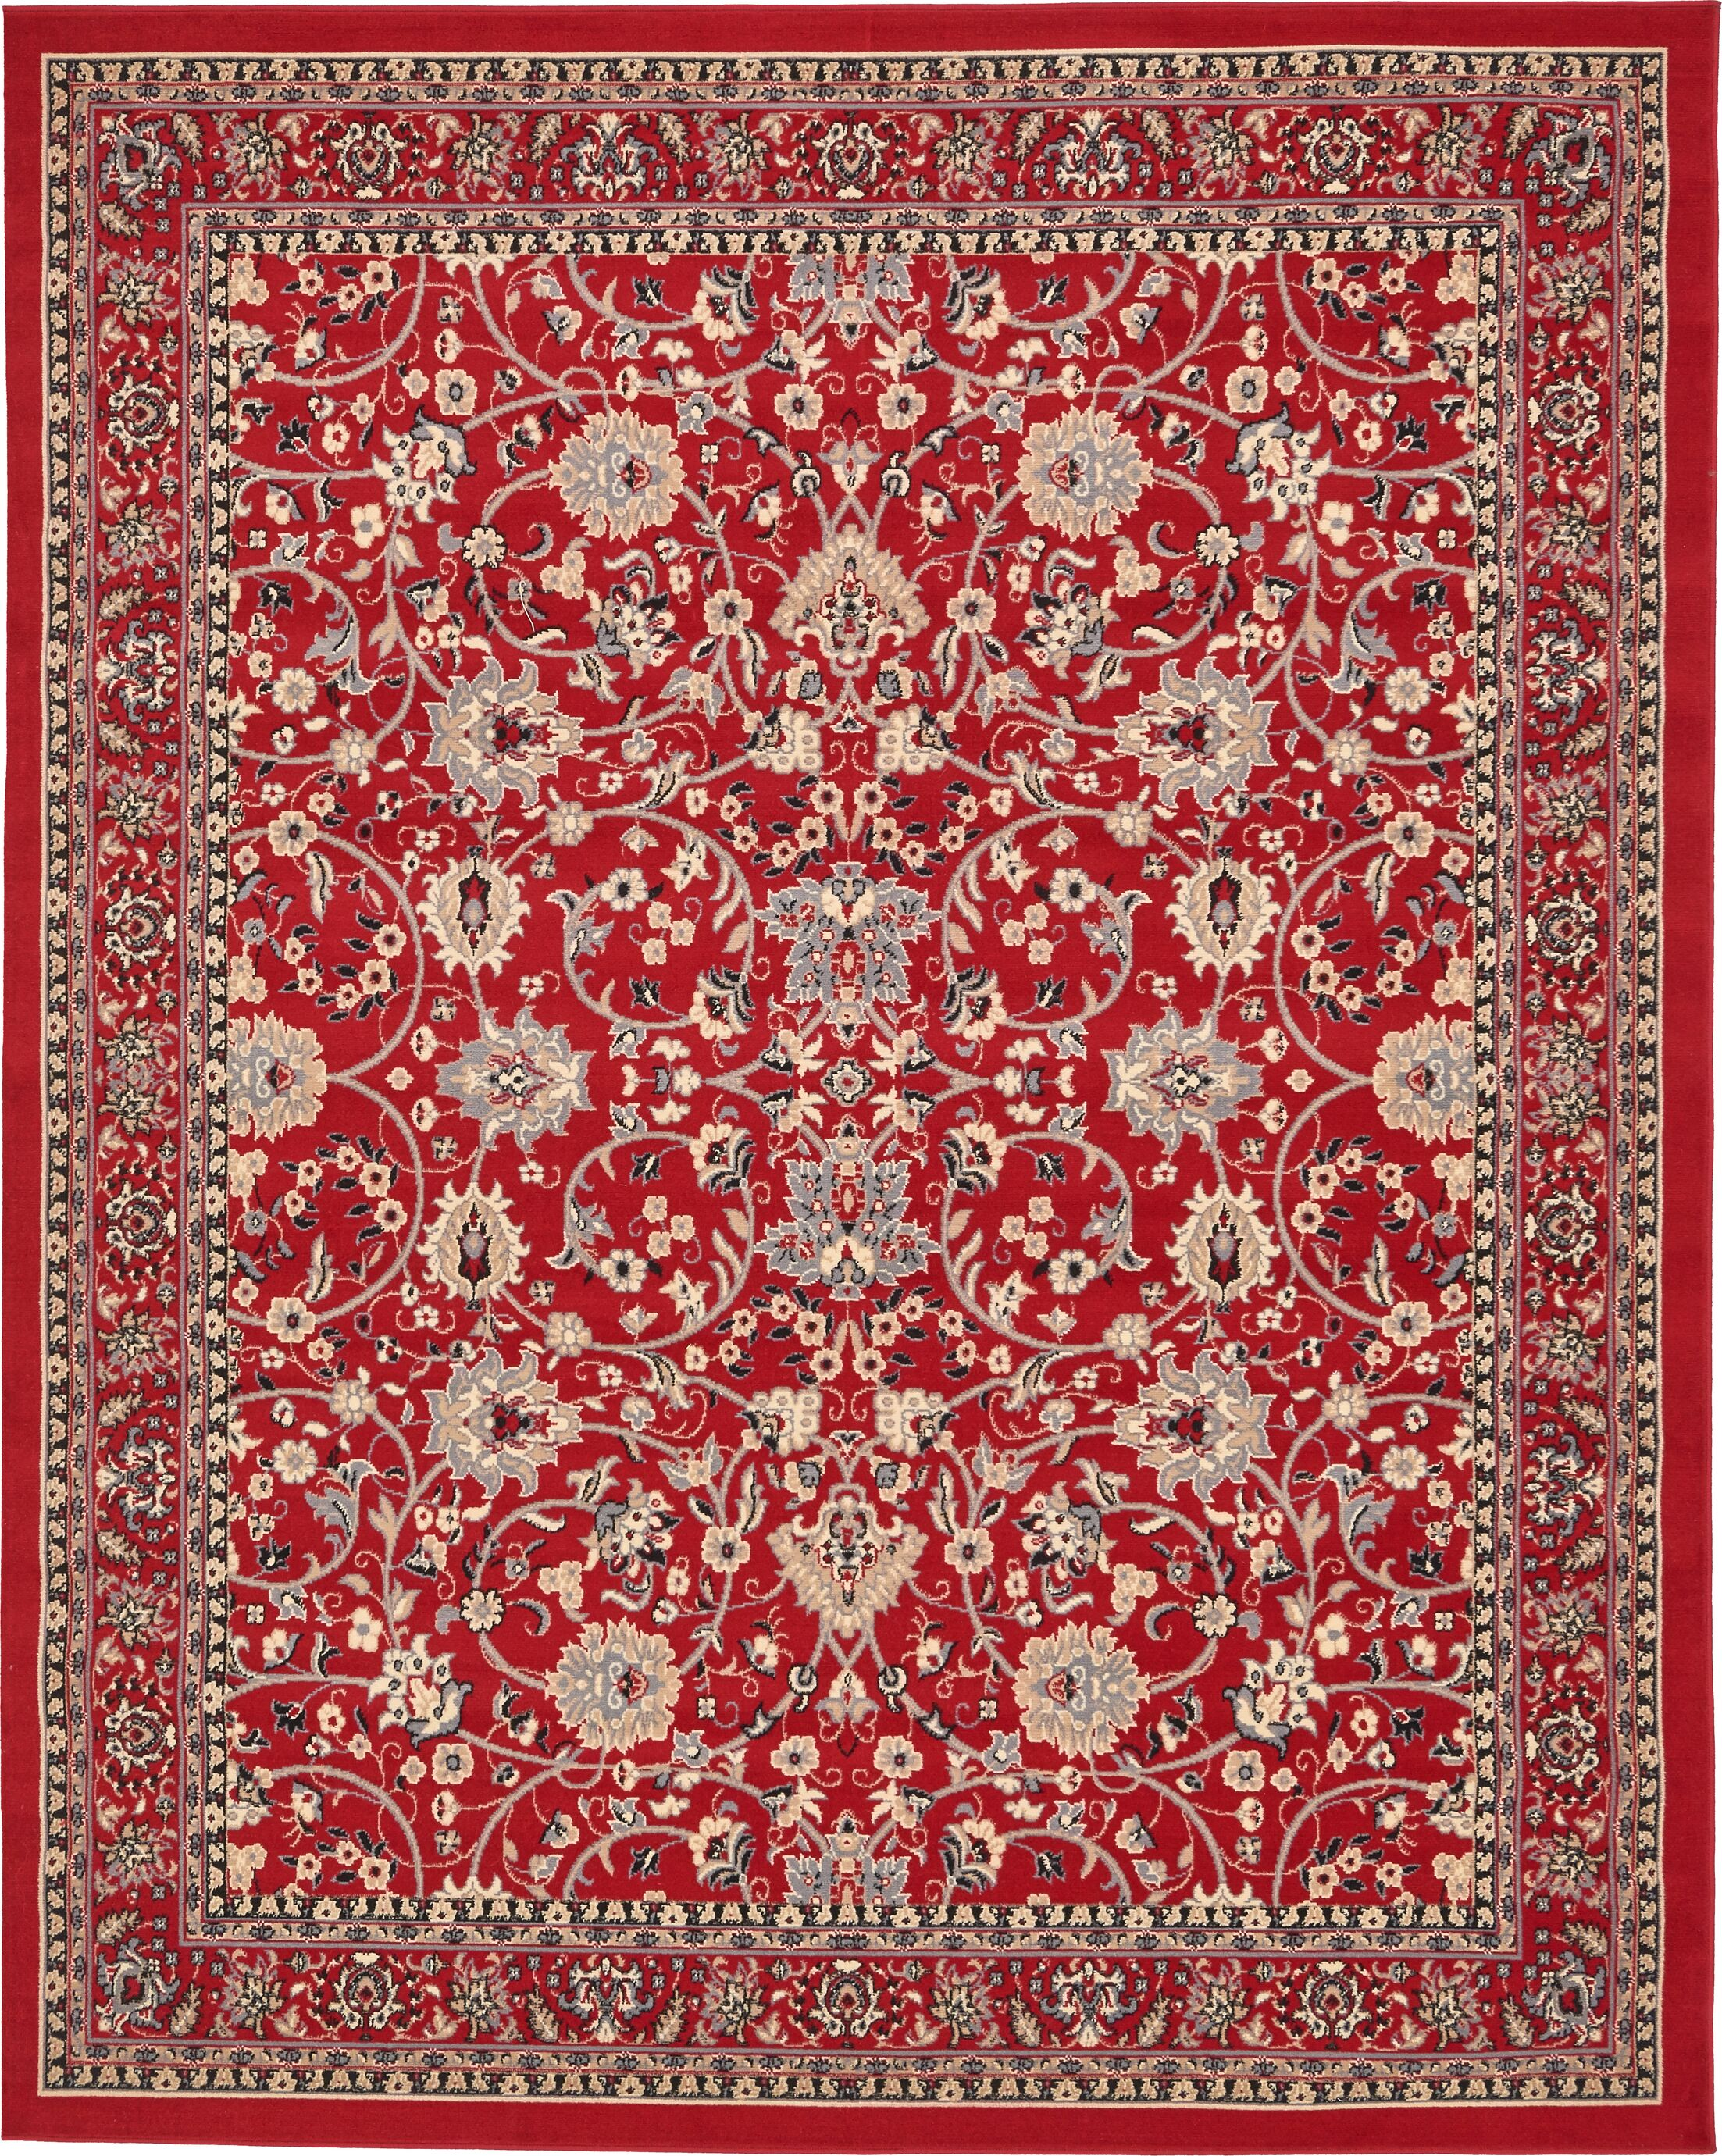 Southern Area Rug Rug Size: Rectangle 8' x 10'